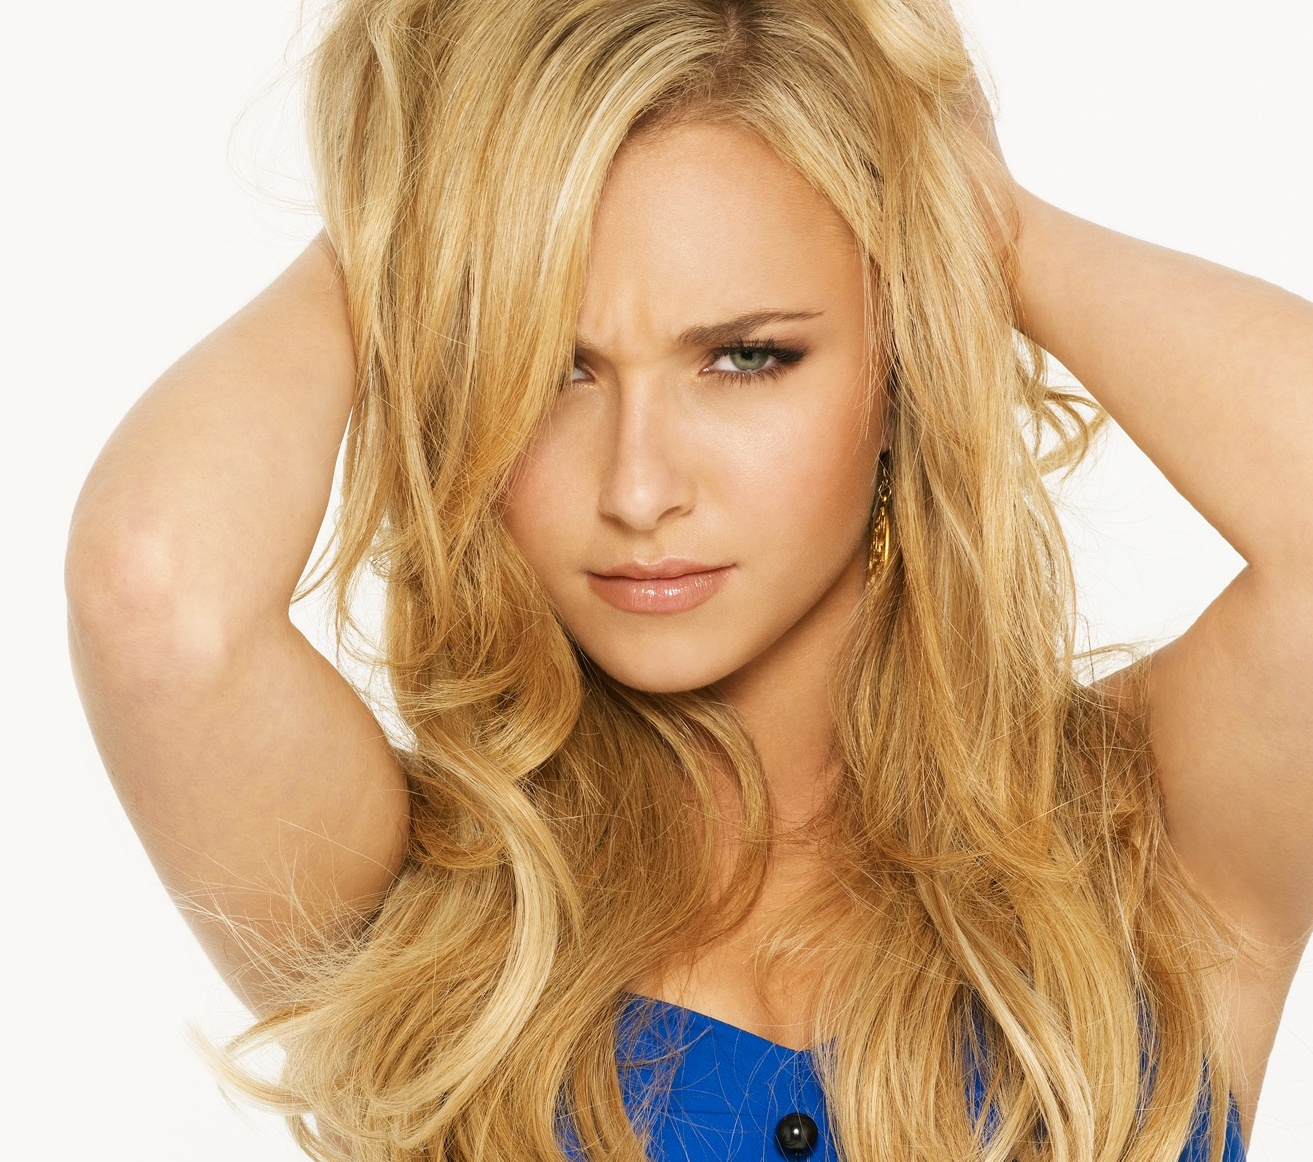 Hayden Panettiere 2019 Wallpapers - WallpaperSafari